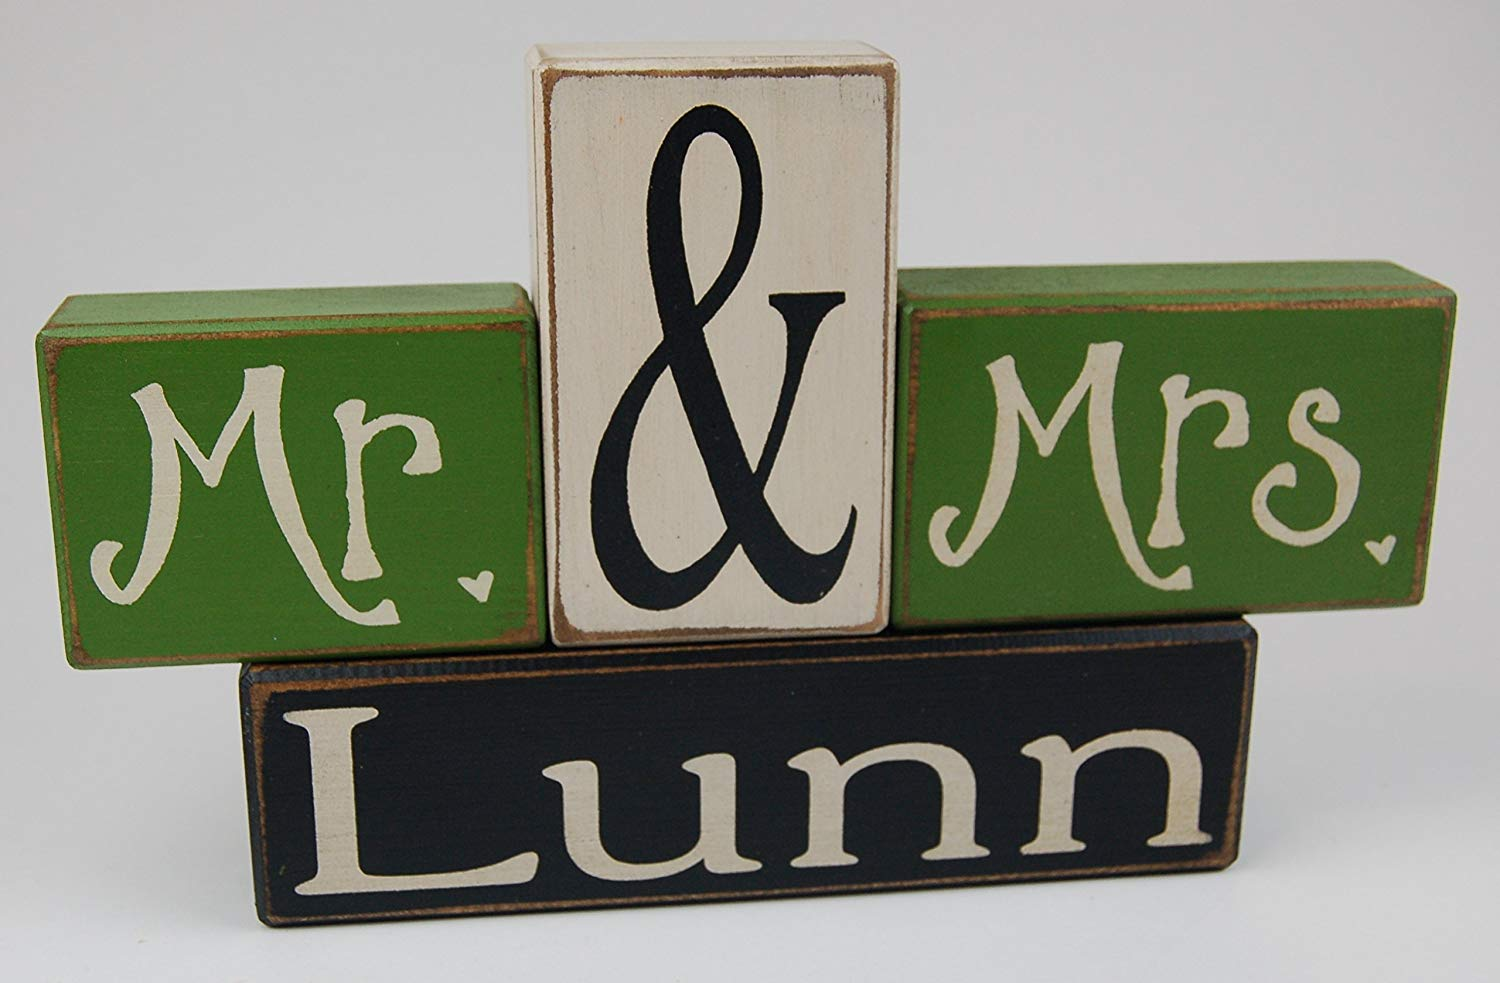 Mr. & Mrs. Letter Blocks Personalized Family Name Primitive Country Distressed Wood Stacking Sign Blocks Wedding Centerpiece Table Decor